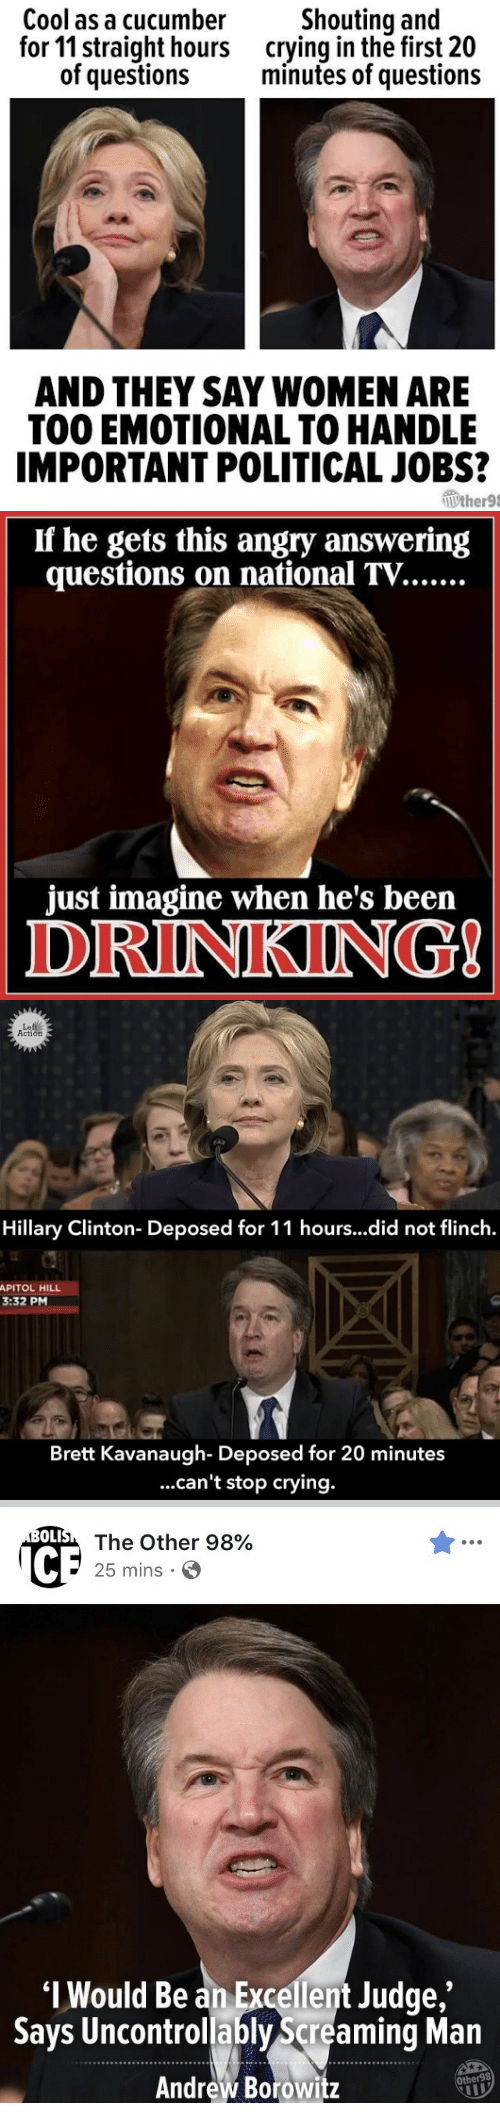 deposed: Cool as a cucumber  for 11 straight hours  of questions  Shouting and  crying in the first 20  minutes of questions  AND THEY SAY WOMEN ARE  TOO EMOTIONAL TO HANDLE  IMPORTANT POLITICAL JOBS?  Wther98   If he gets this angry answering  just imagine when he's been  DRINKING   Le  Action  Hillary Clinton- Deposed for 11 hours...did not flinch.  APITOL HILL  3:32 PM  Brett Kavanaugh- Deposed for 20 minutes  ...can't stop crying.   OLI  The Other 98%  25 mins .  I Would Be an Excellent Judge  Says Uncontrollably Screaming Man  Andrew Borowitz  ,'  Other98